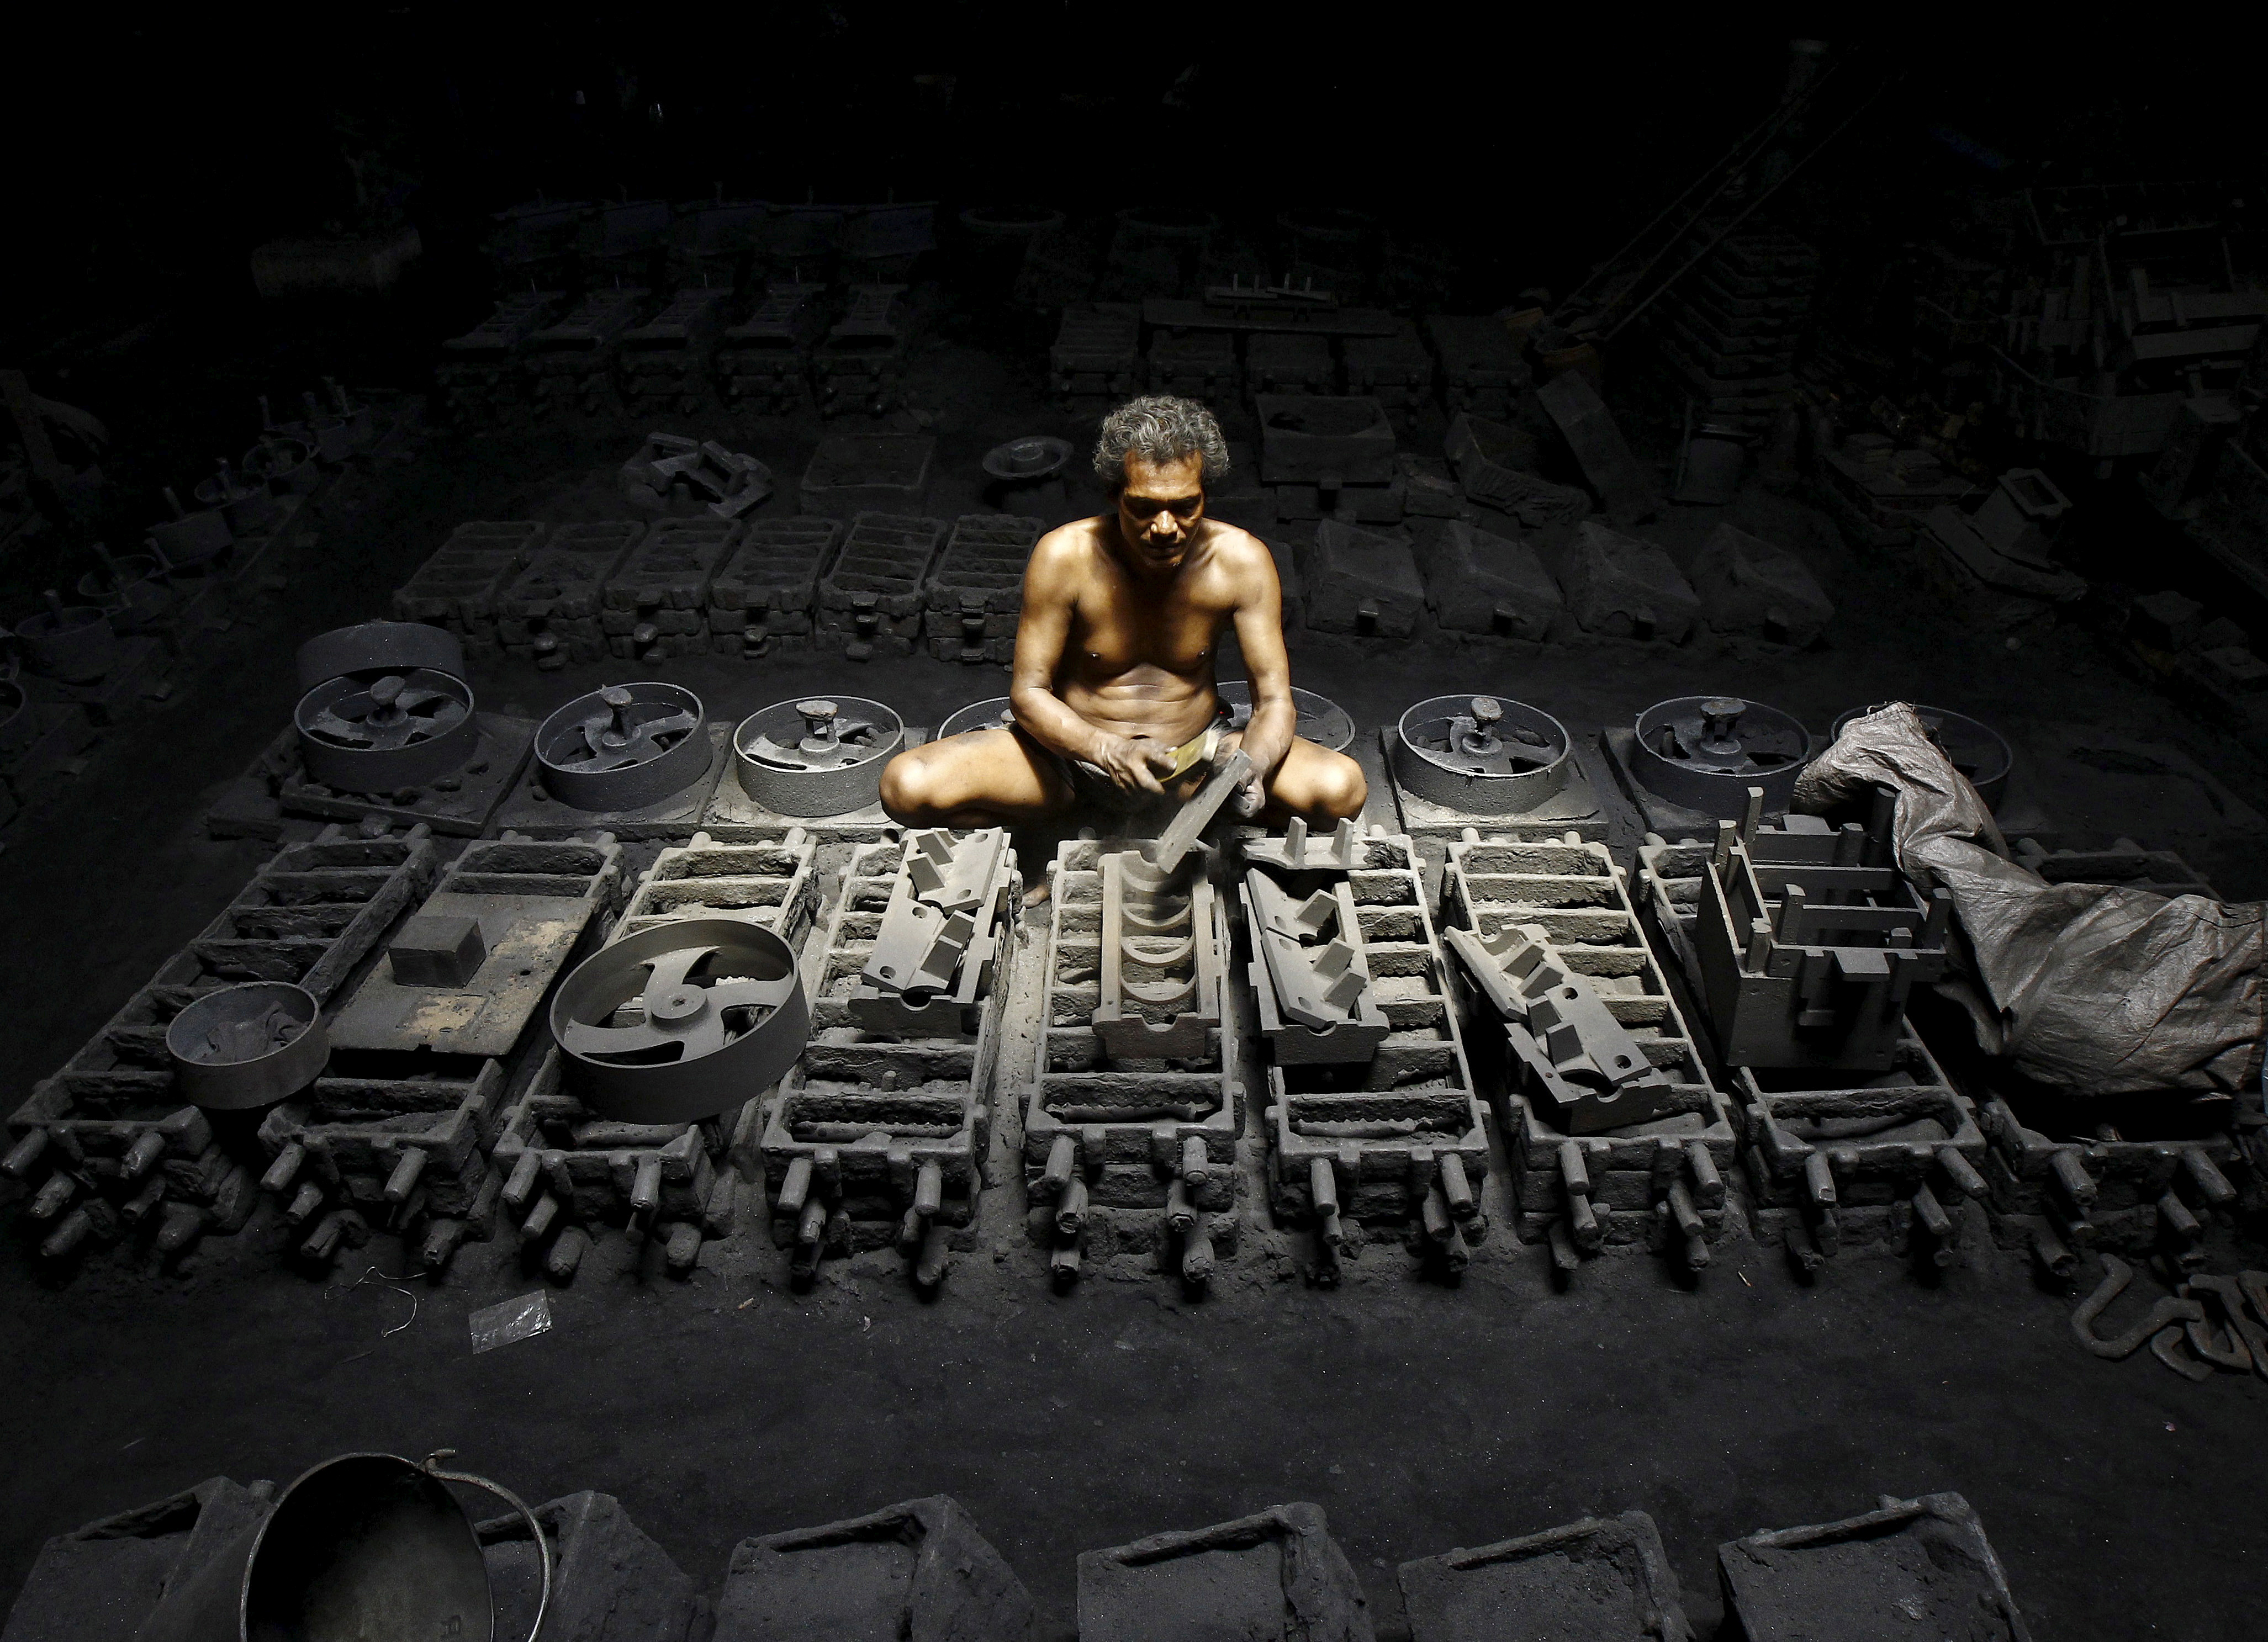 A labourer works inside the manufacturing unit of iron parts at a factory on the outskirts of Kolkata, India, September 11, 2015. REUTERS/Rupak De Chowdhuri/File Photo   GLOBAL BUSINESS WEEK AHEAD PACKAGE - SEARCH